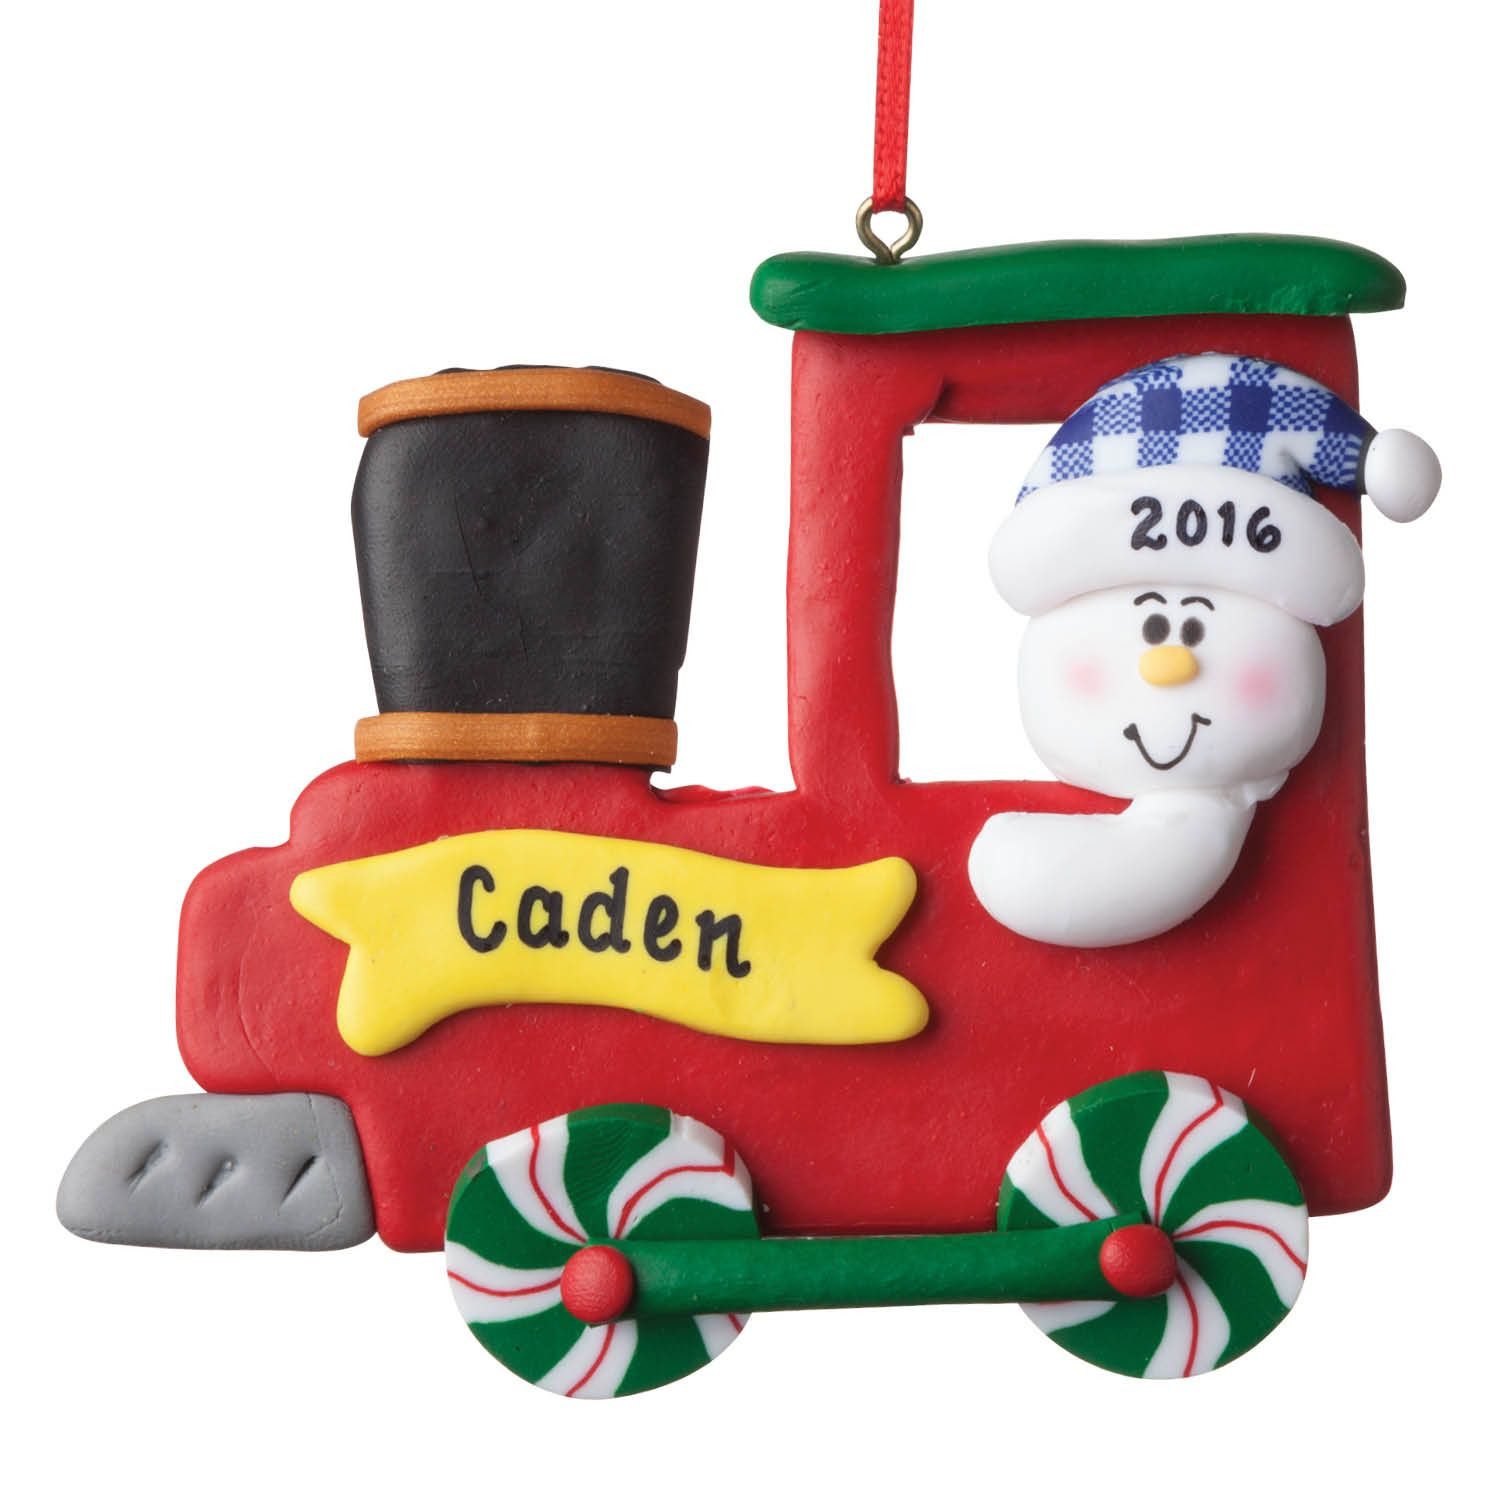 Personalized ornaments for kids - This Fun Personalized Ornament Will Brighten Your Tree